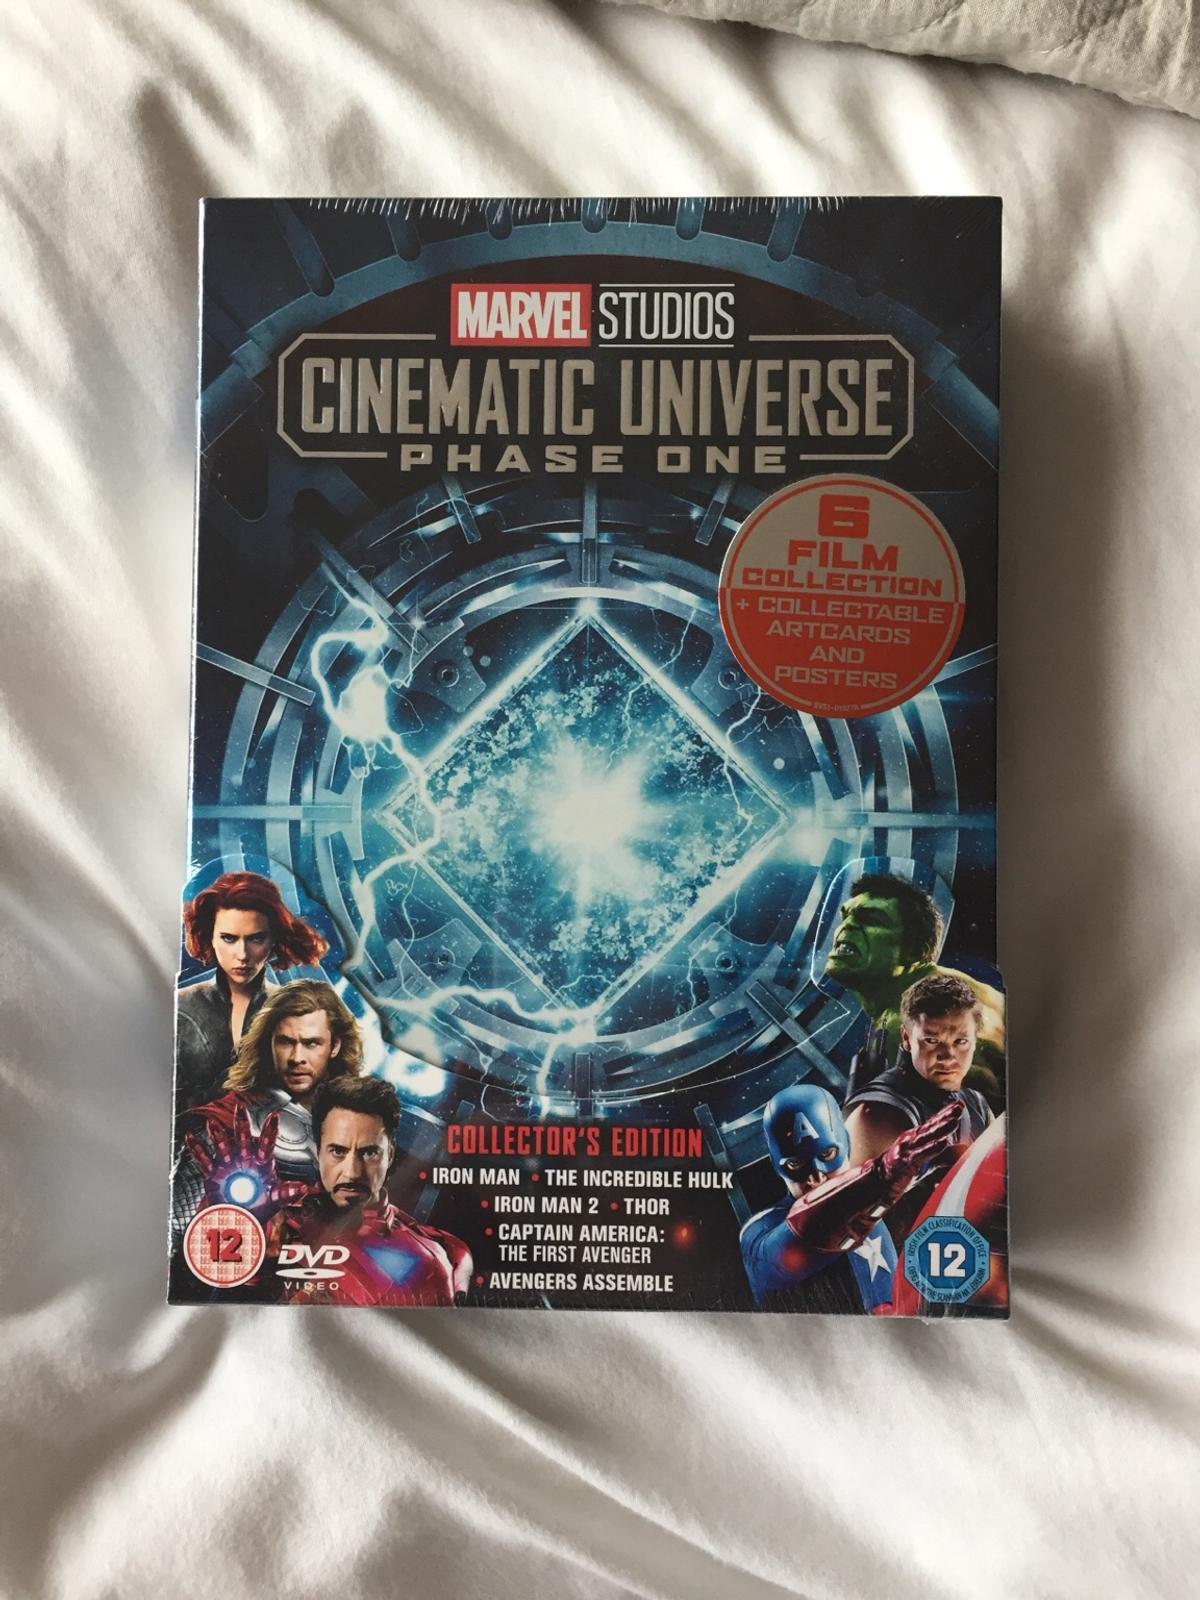 Unopened PHASE ONE collectors edition 6 film collection + additional content, stunning collectible art cards and posters inside